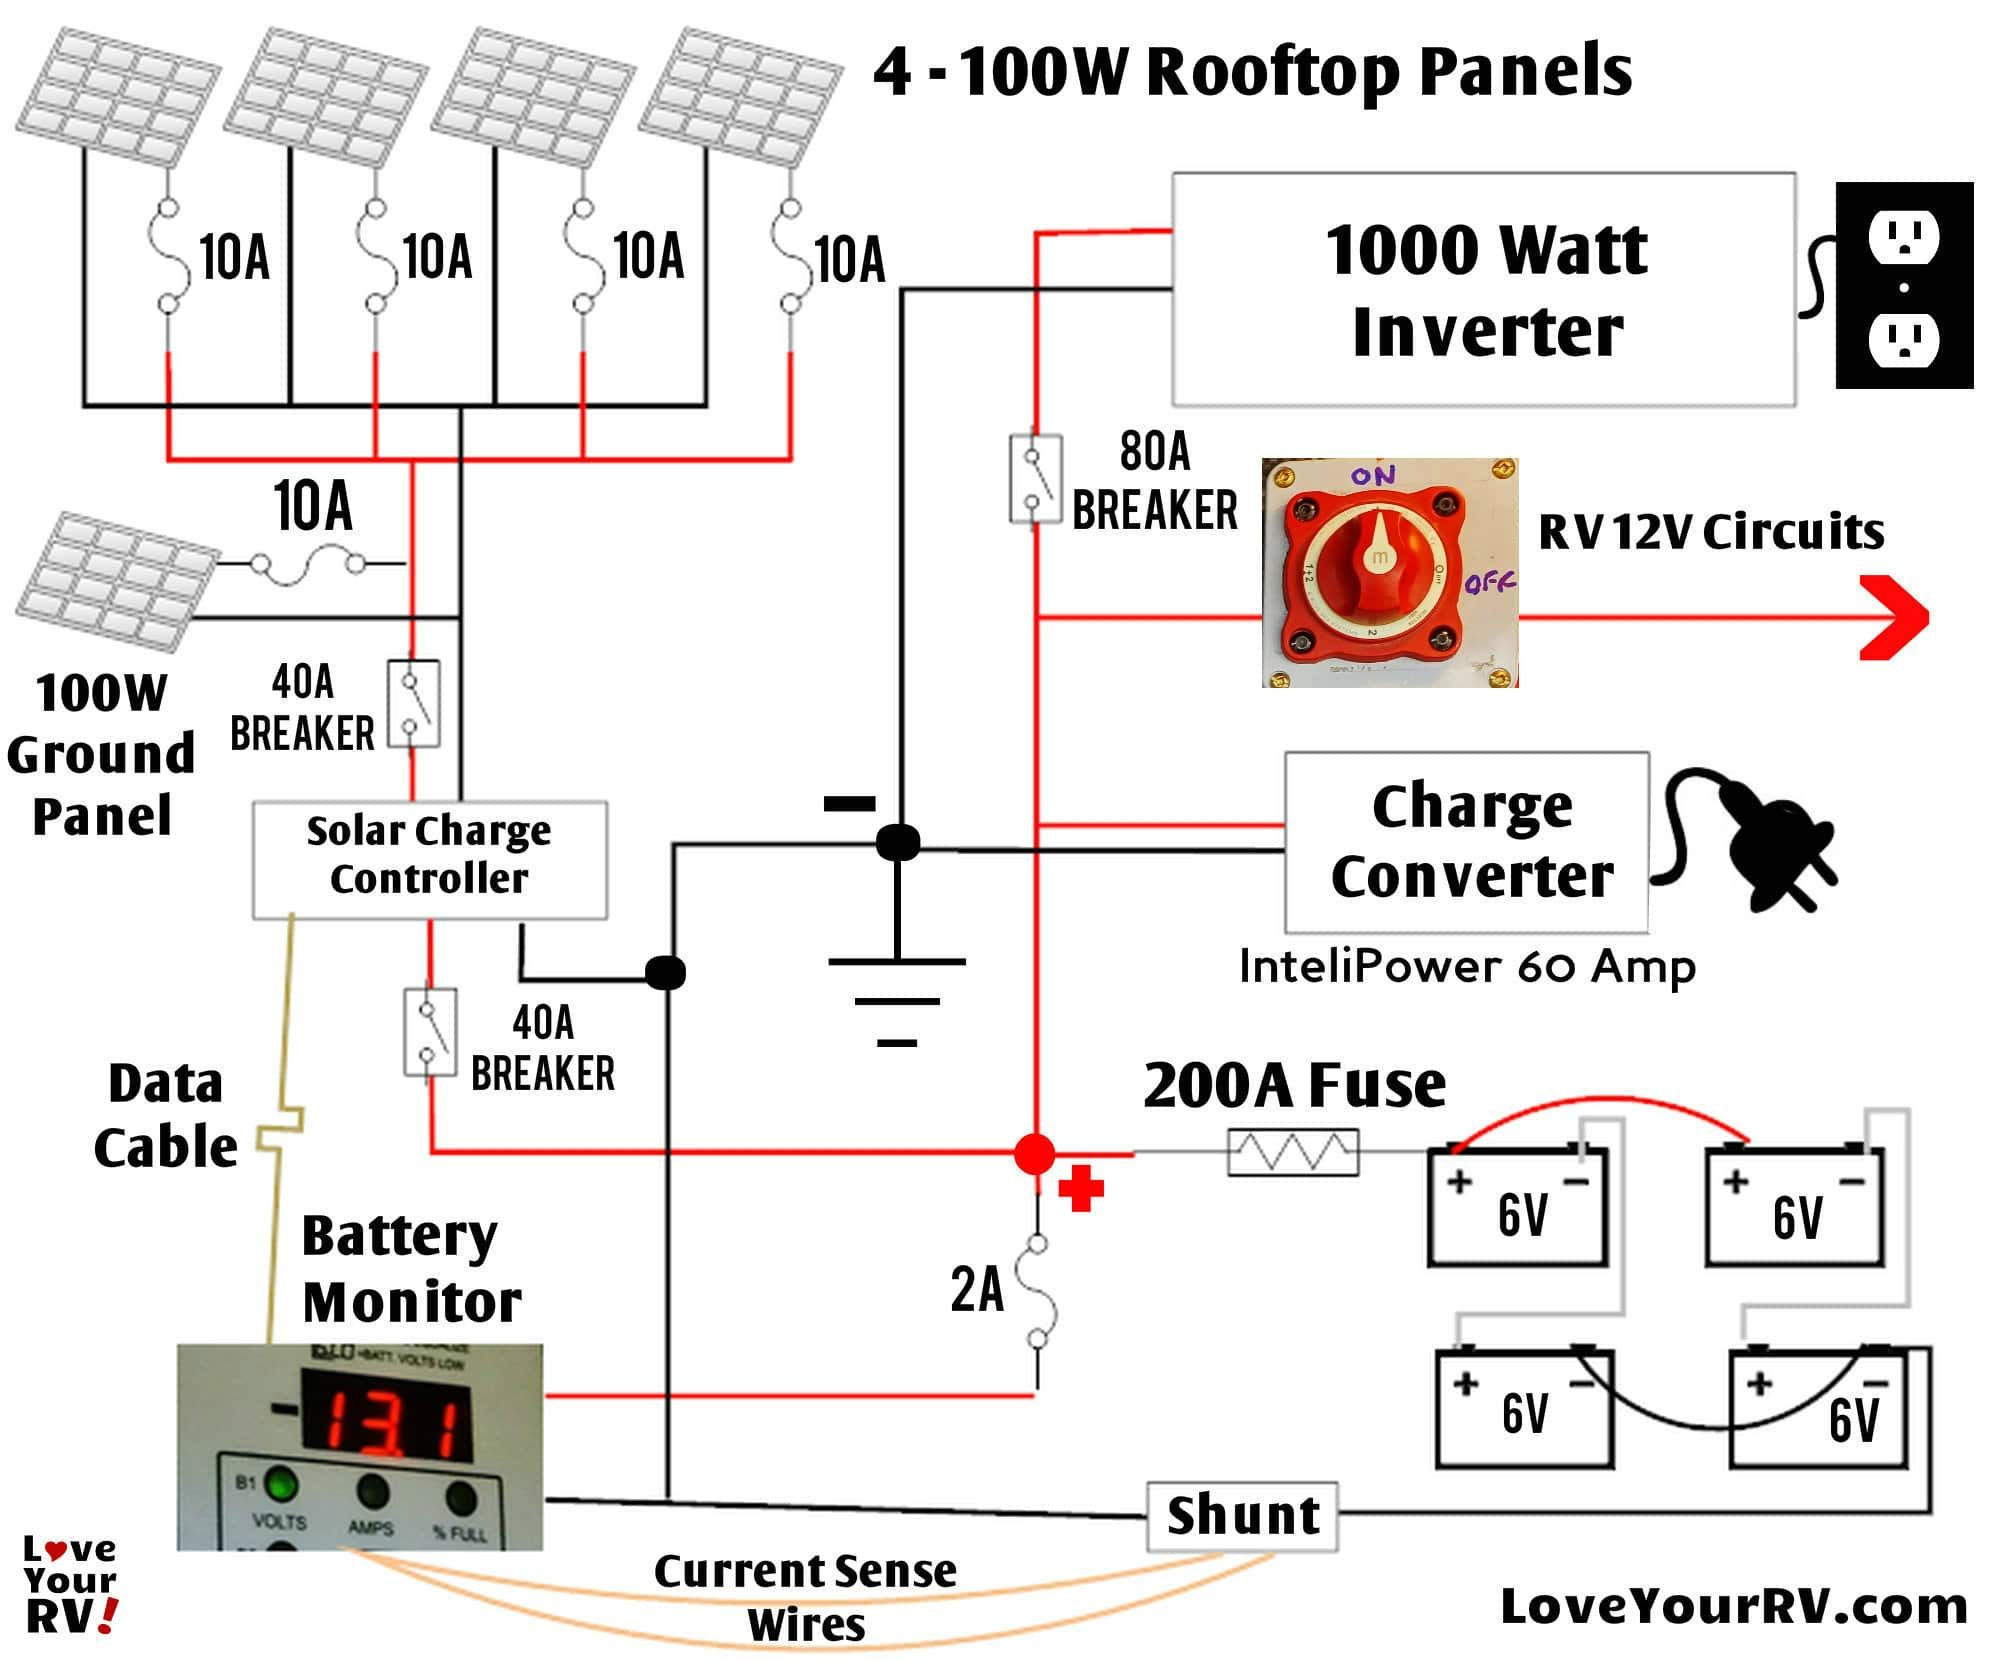 solar panels wiring diagram installation Download-I have our off grid RV power system plete so I m putting out a detailed overview of the system ponents used and how much they cost Luckily for me 15-b